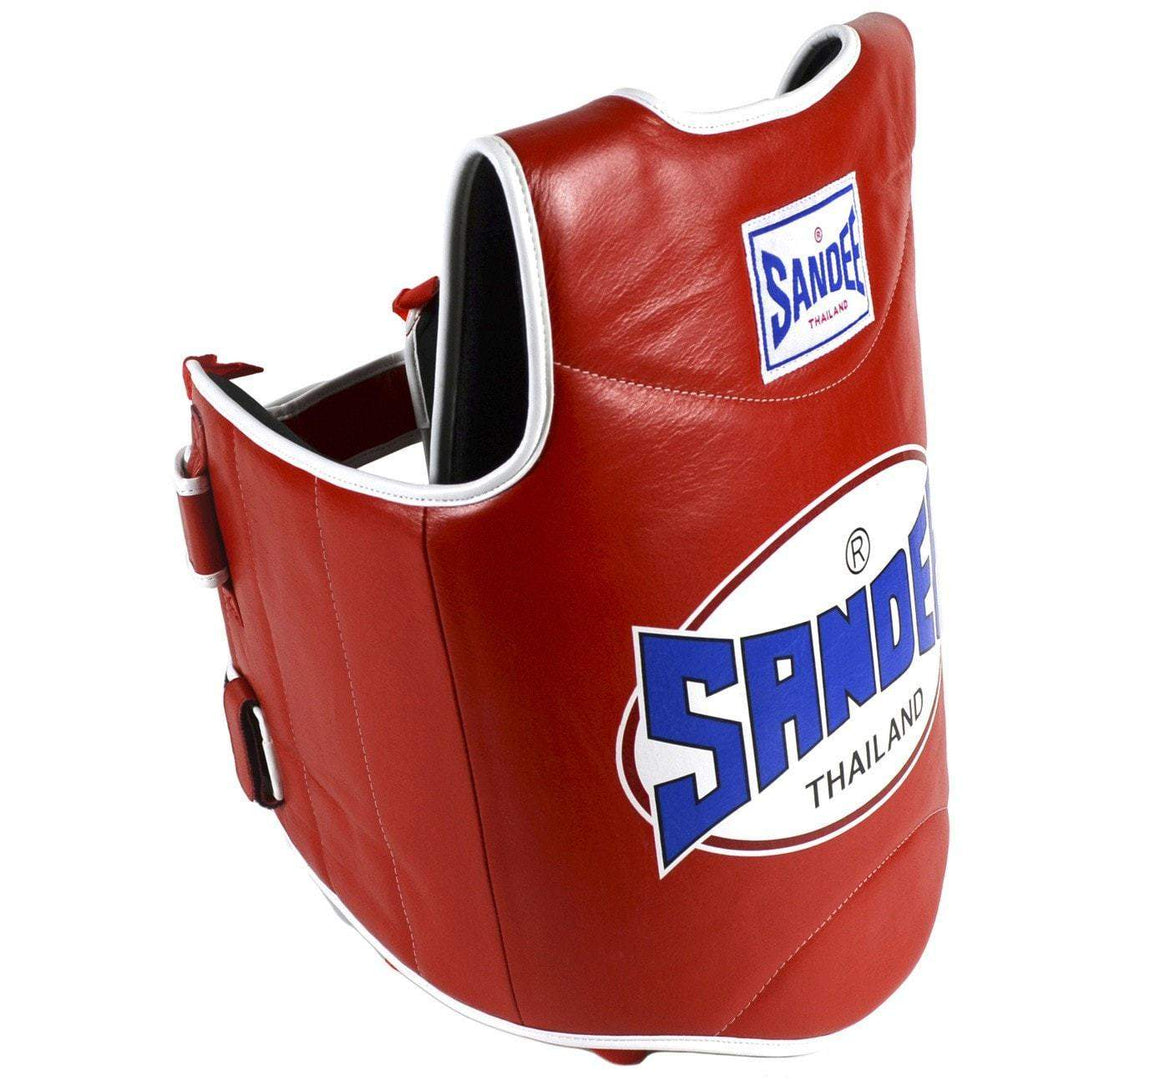 Sandee Body Shield - Red/White